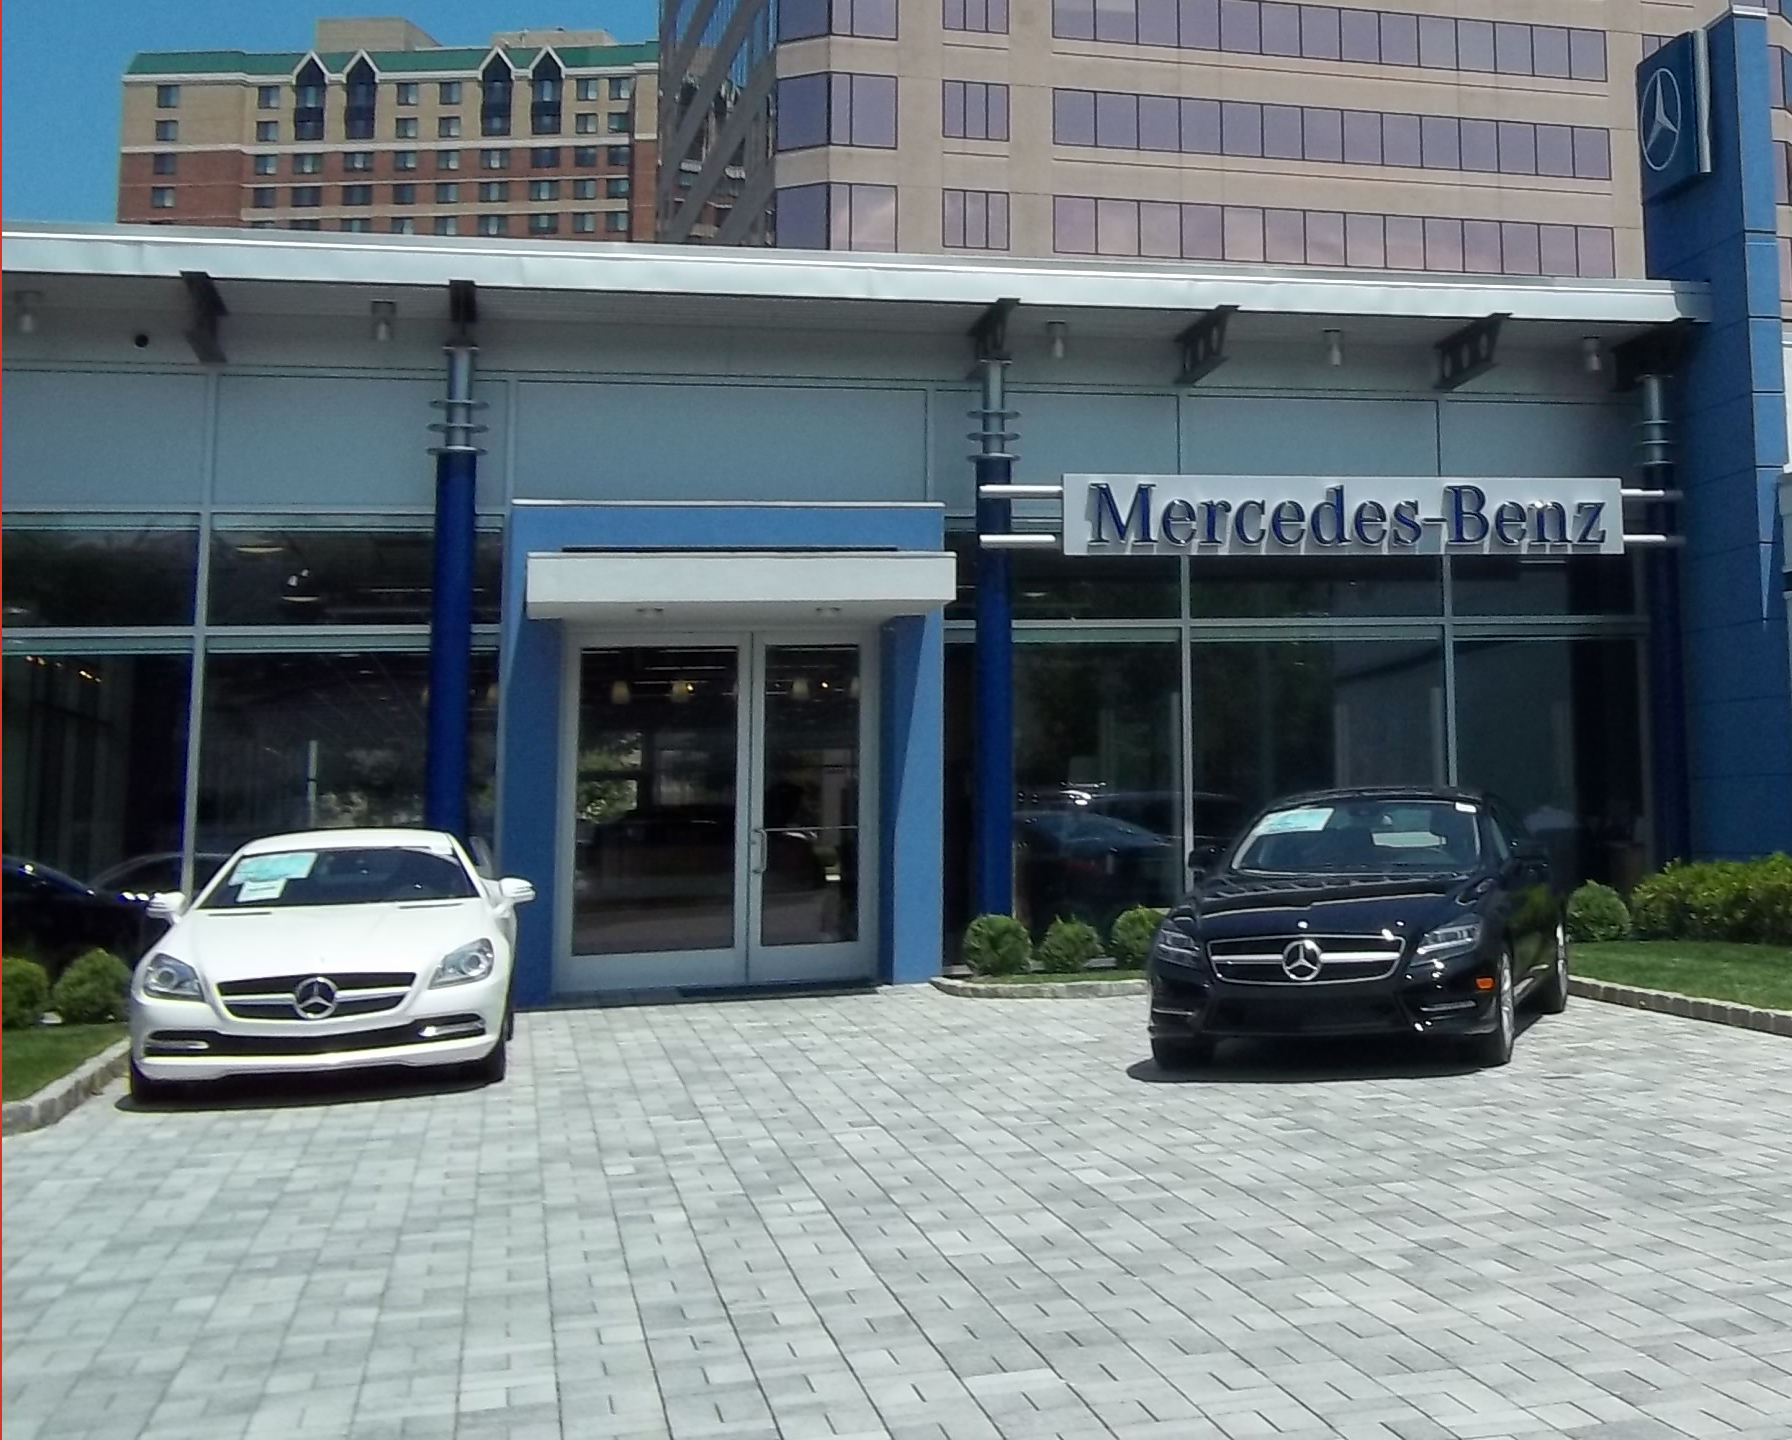 Premier ford lincoln used ford dealer serving queens ny for Mercedes benz dealer in bronx ny